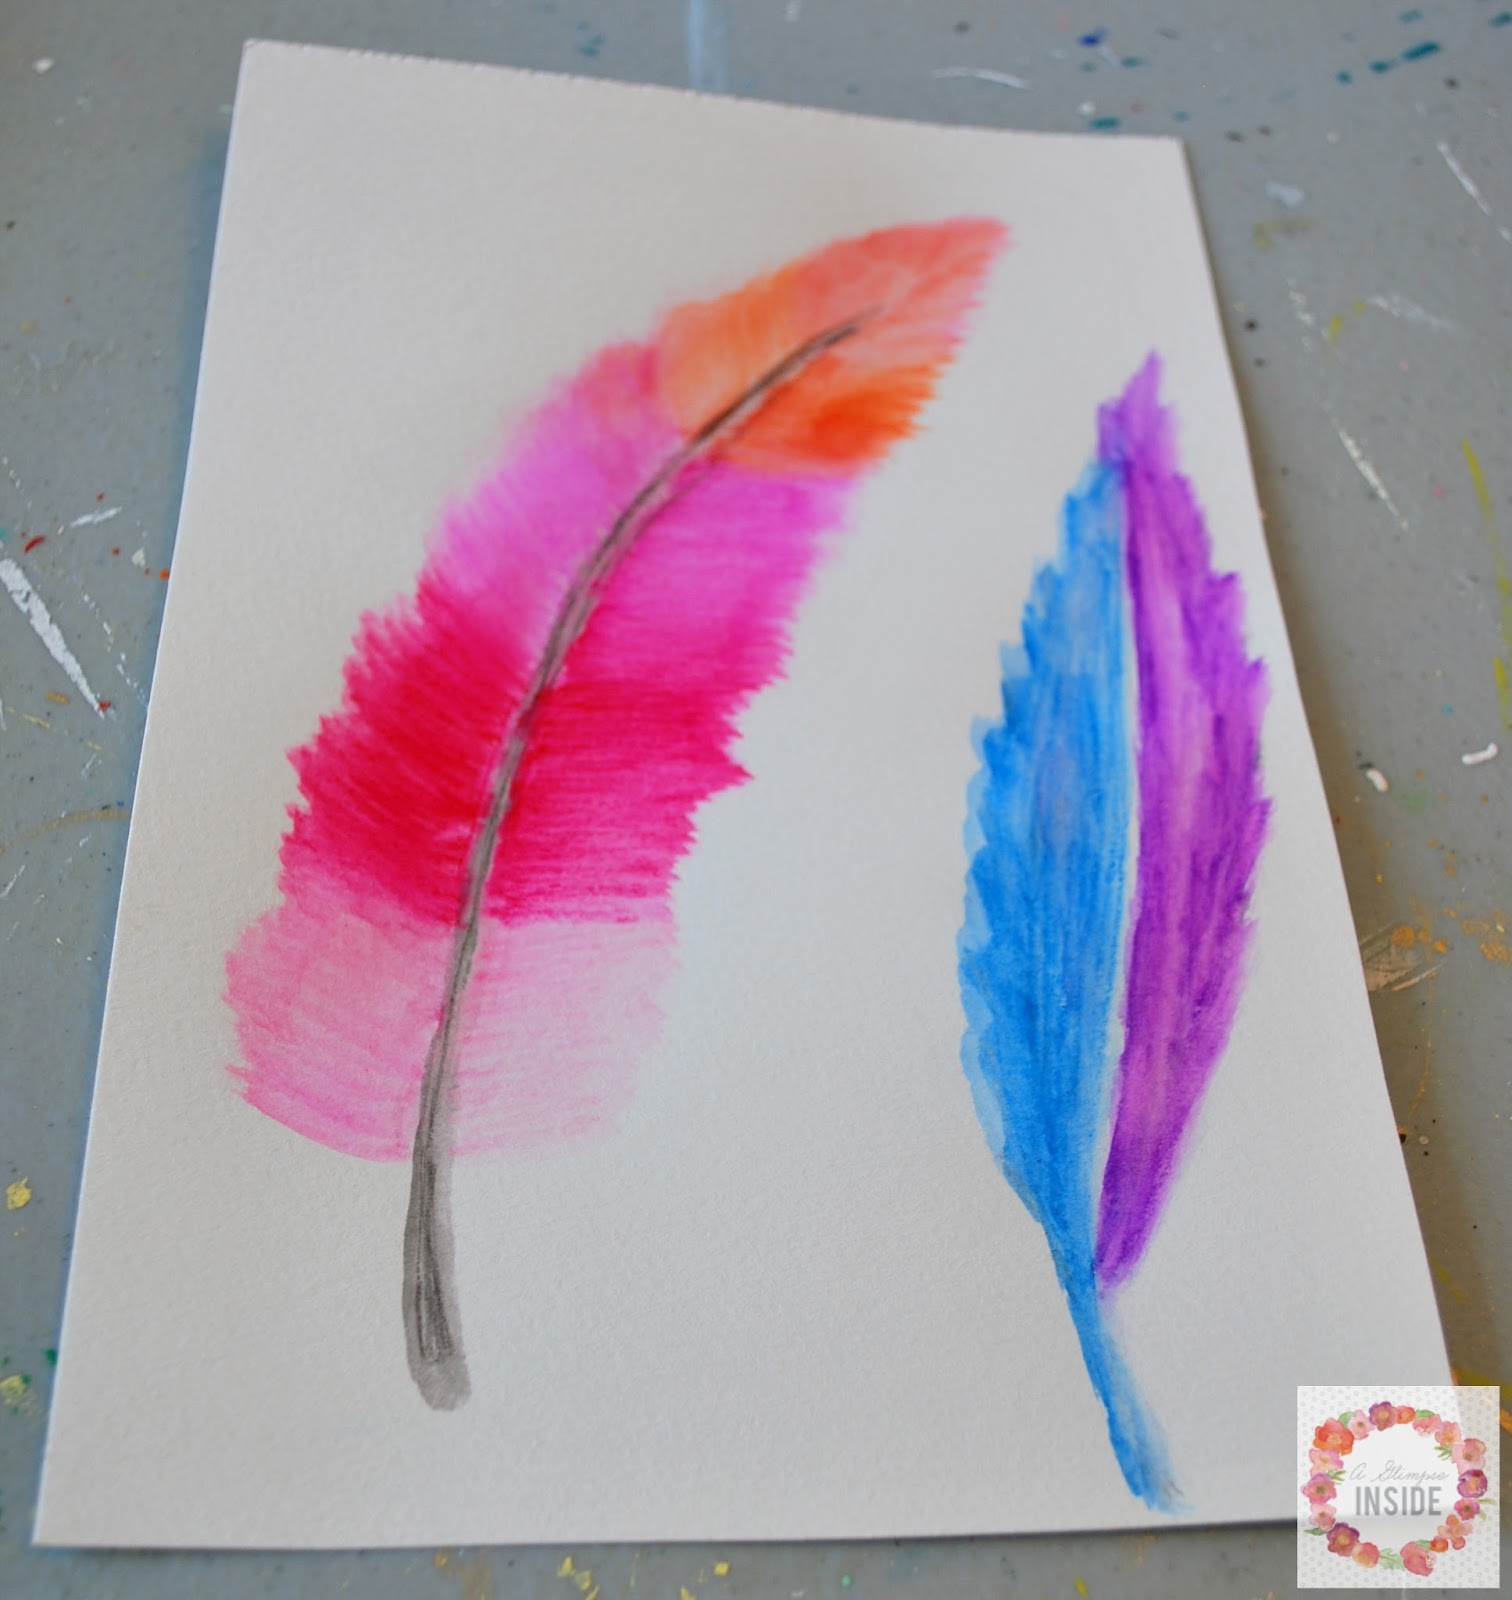 And here here are some feathers as well